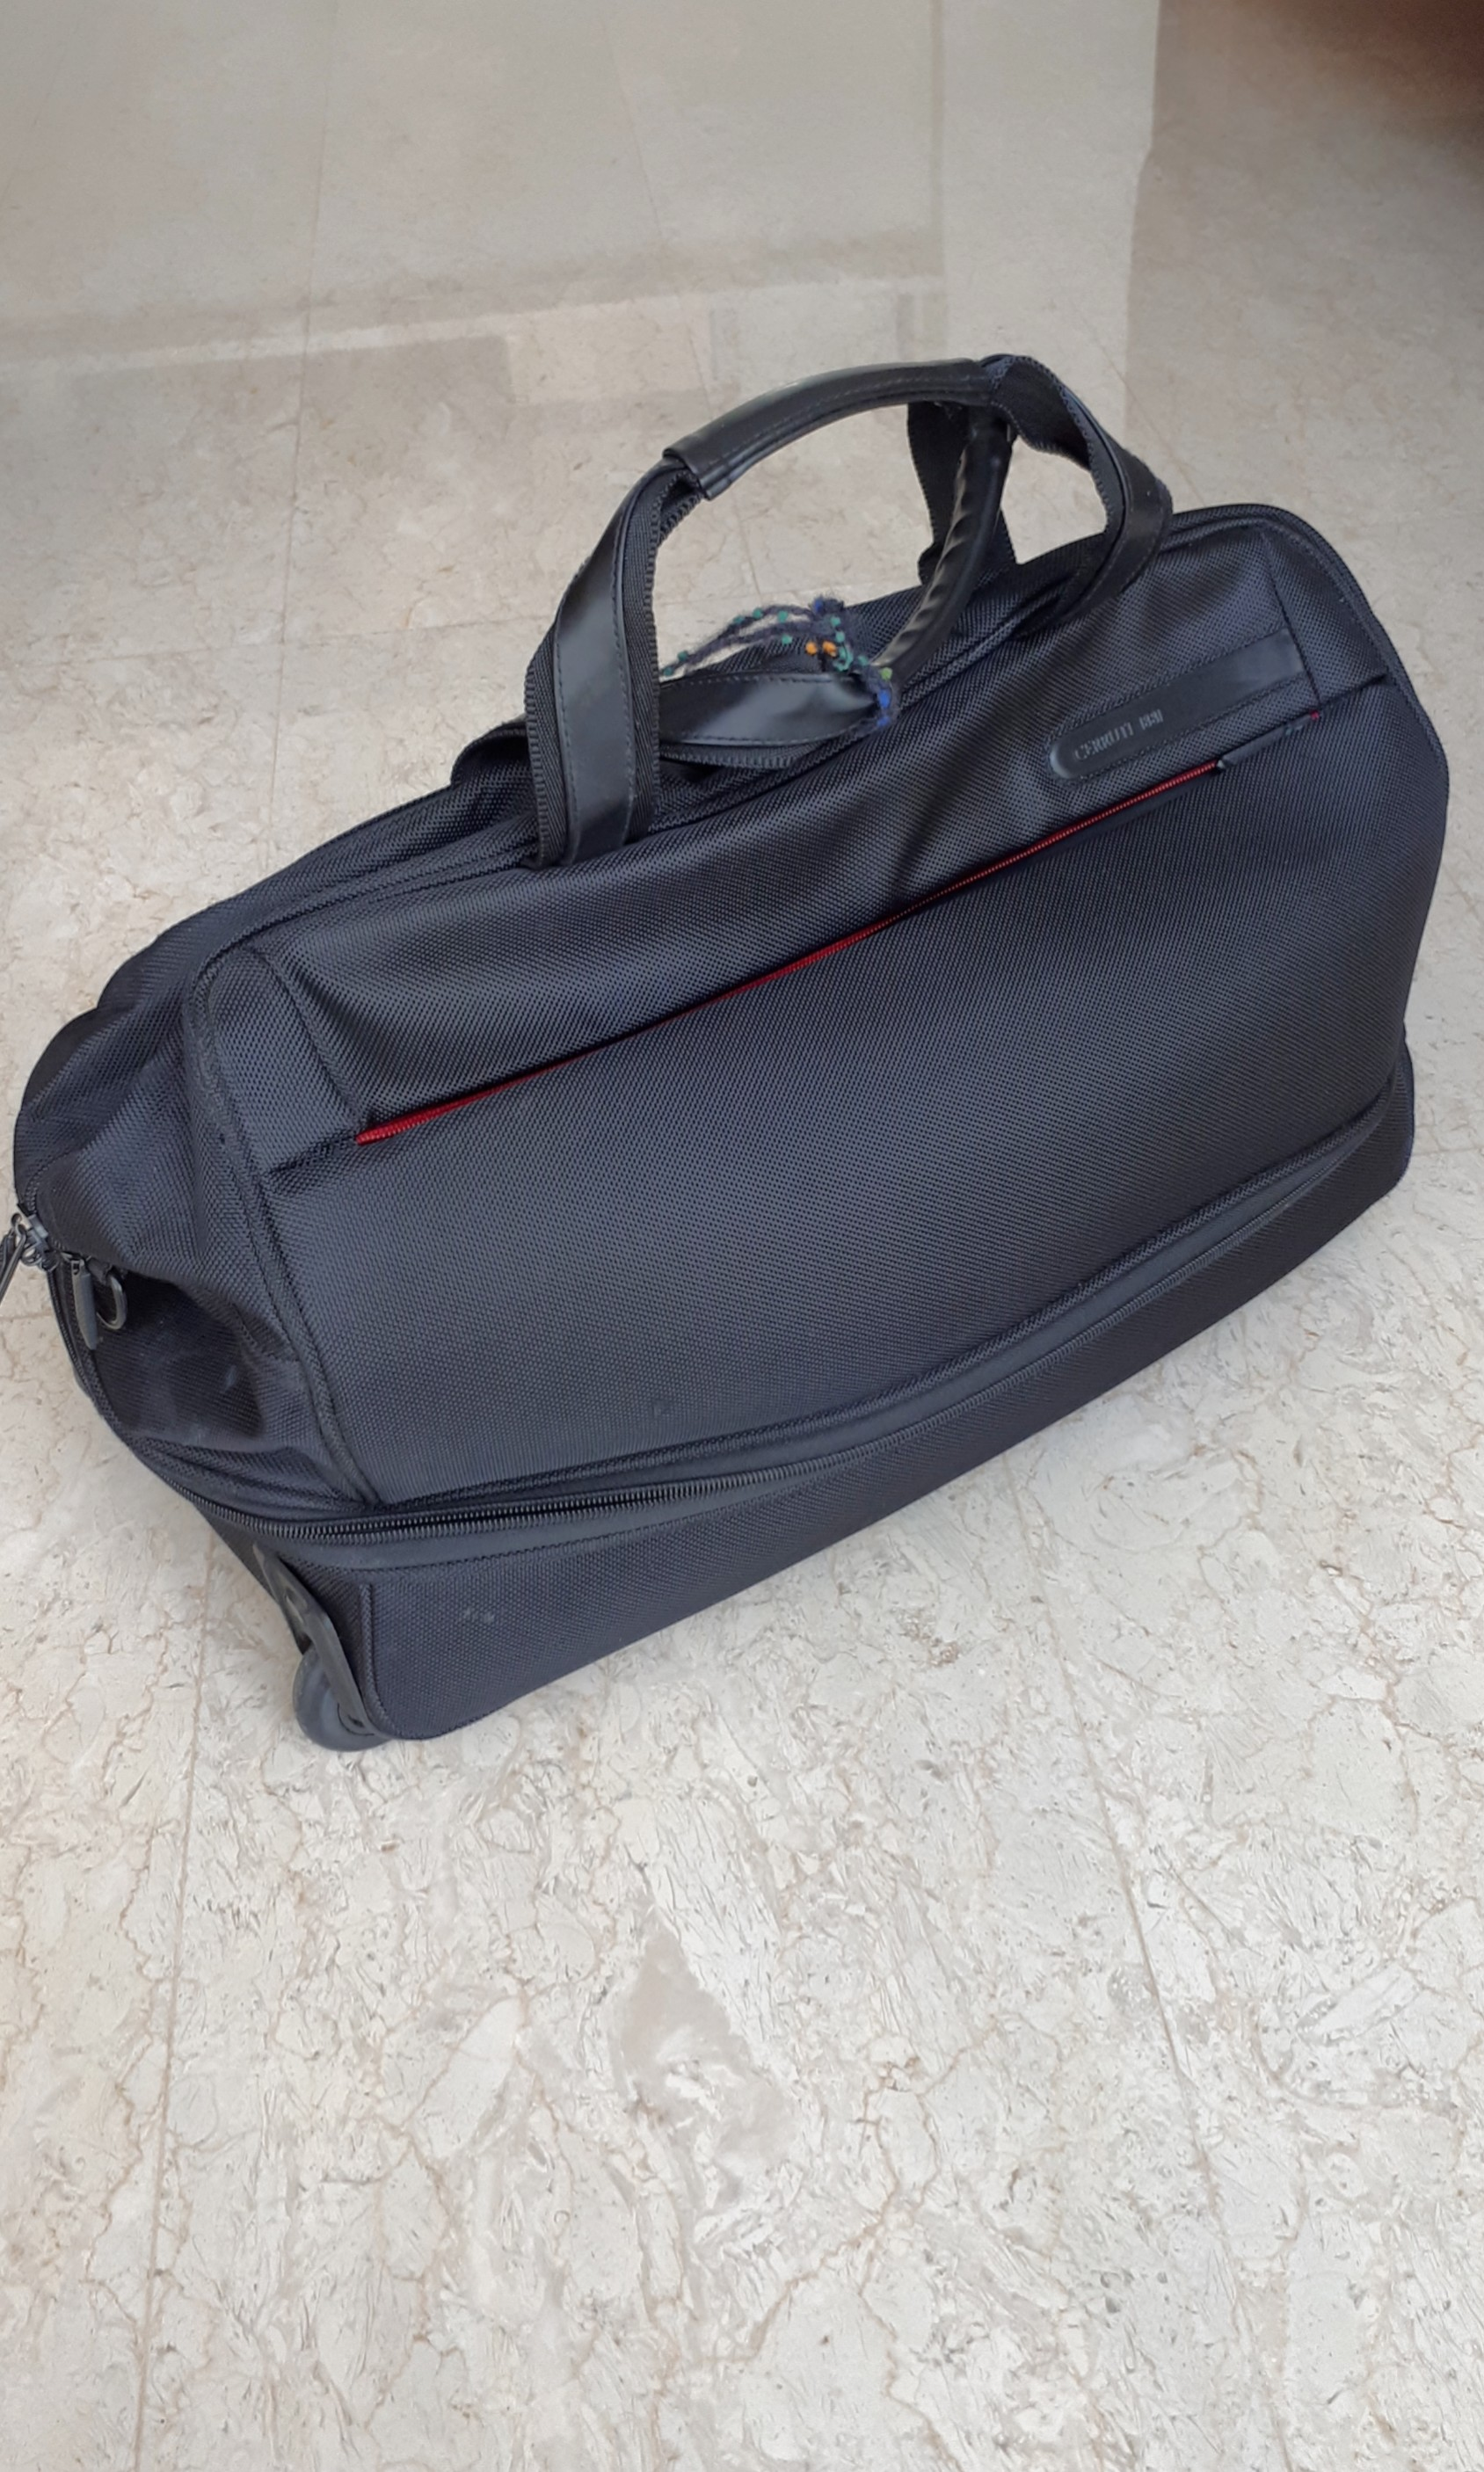 44bc615060 Cerruti 1881 travel cabin bag, Travel, Travel Essentials, Luggage on  Carousell